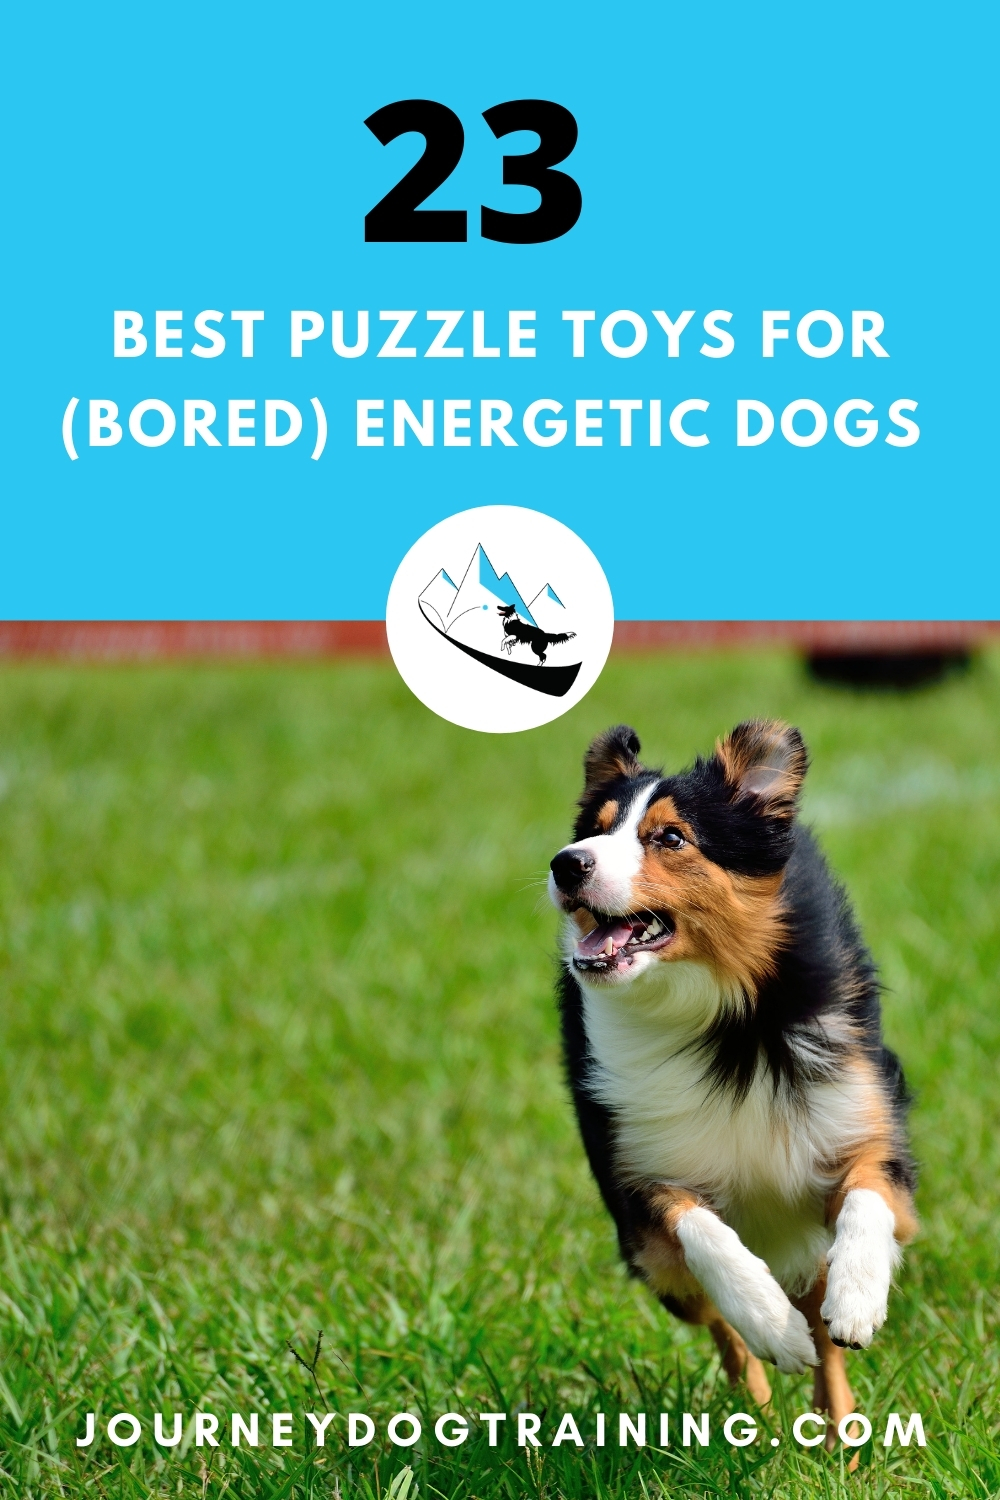 23 Best puzzle toys for bored energetic dogs.energetic dogs need a daily outlet - especially while their humans are away at work. Busting boredom in energetic dogs isn't a small task, but it's absolutely necessary for your own sanity.  https://journeydogtraining.com/puzzle-toys/